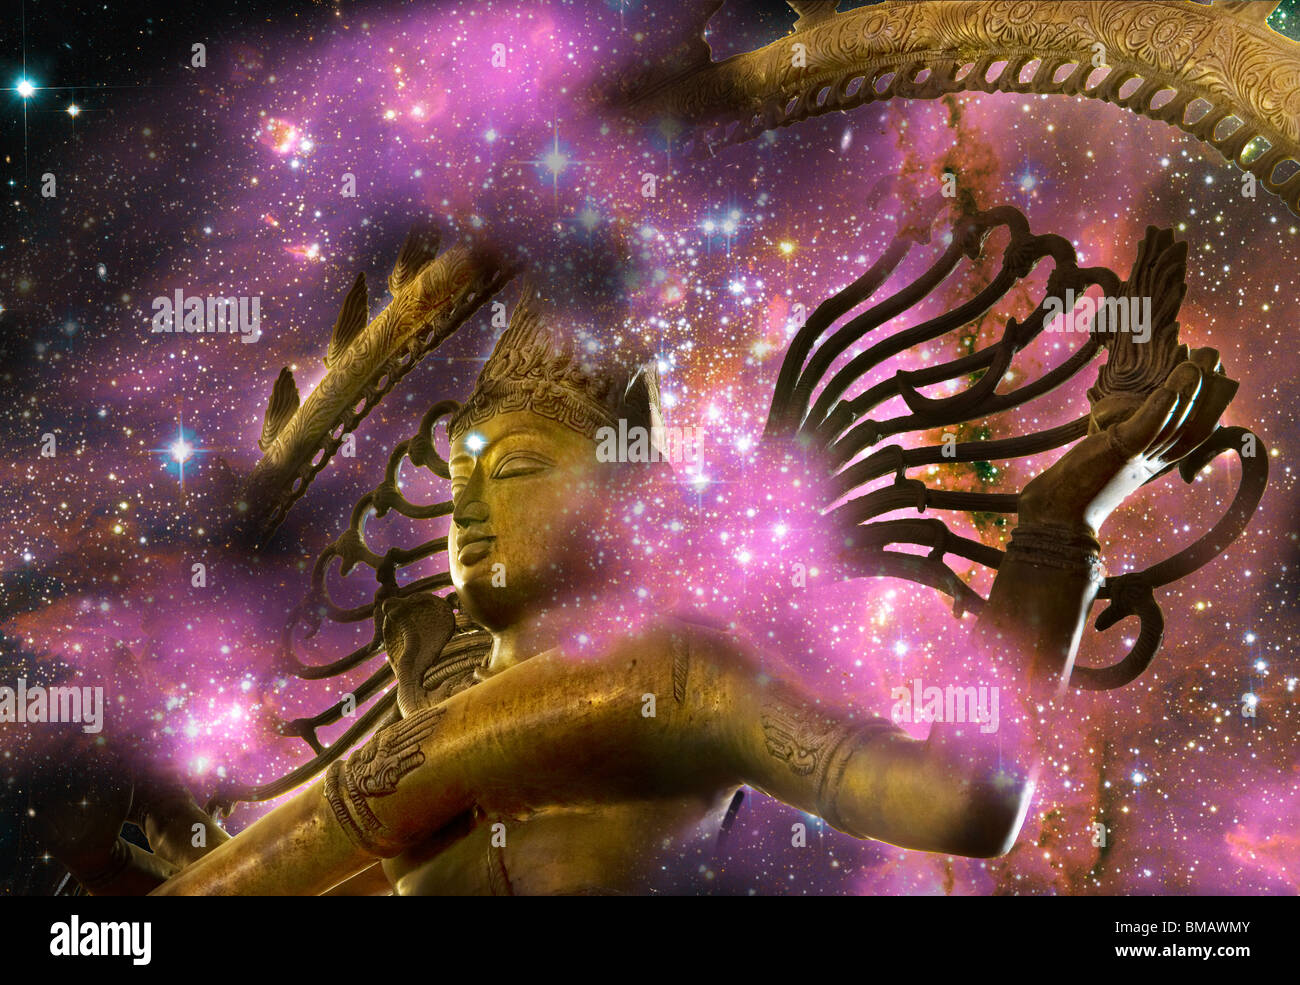 illustration of Hindu god Shiva - Stock Image